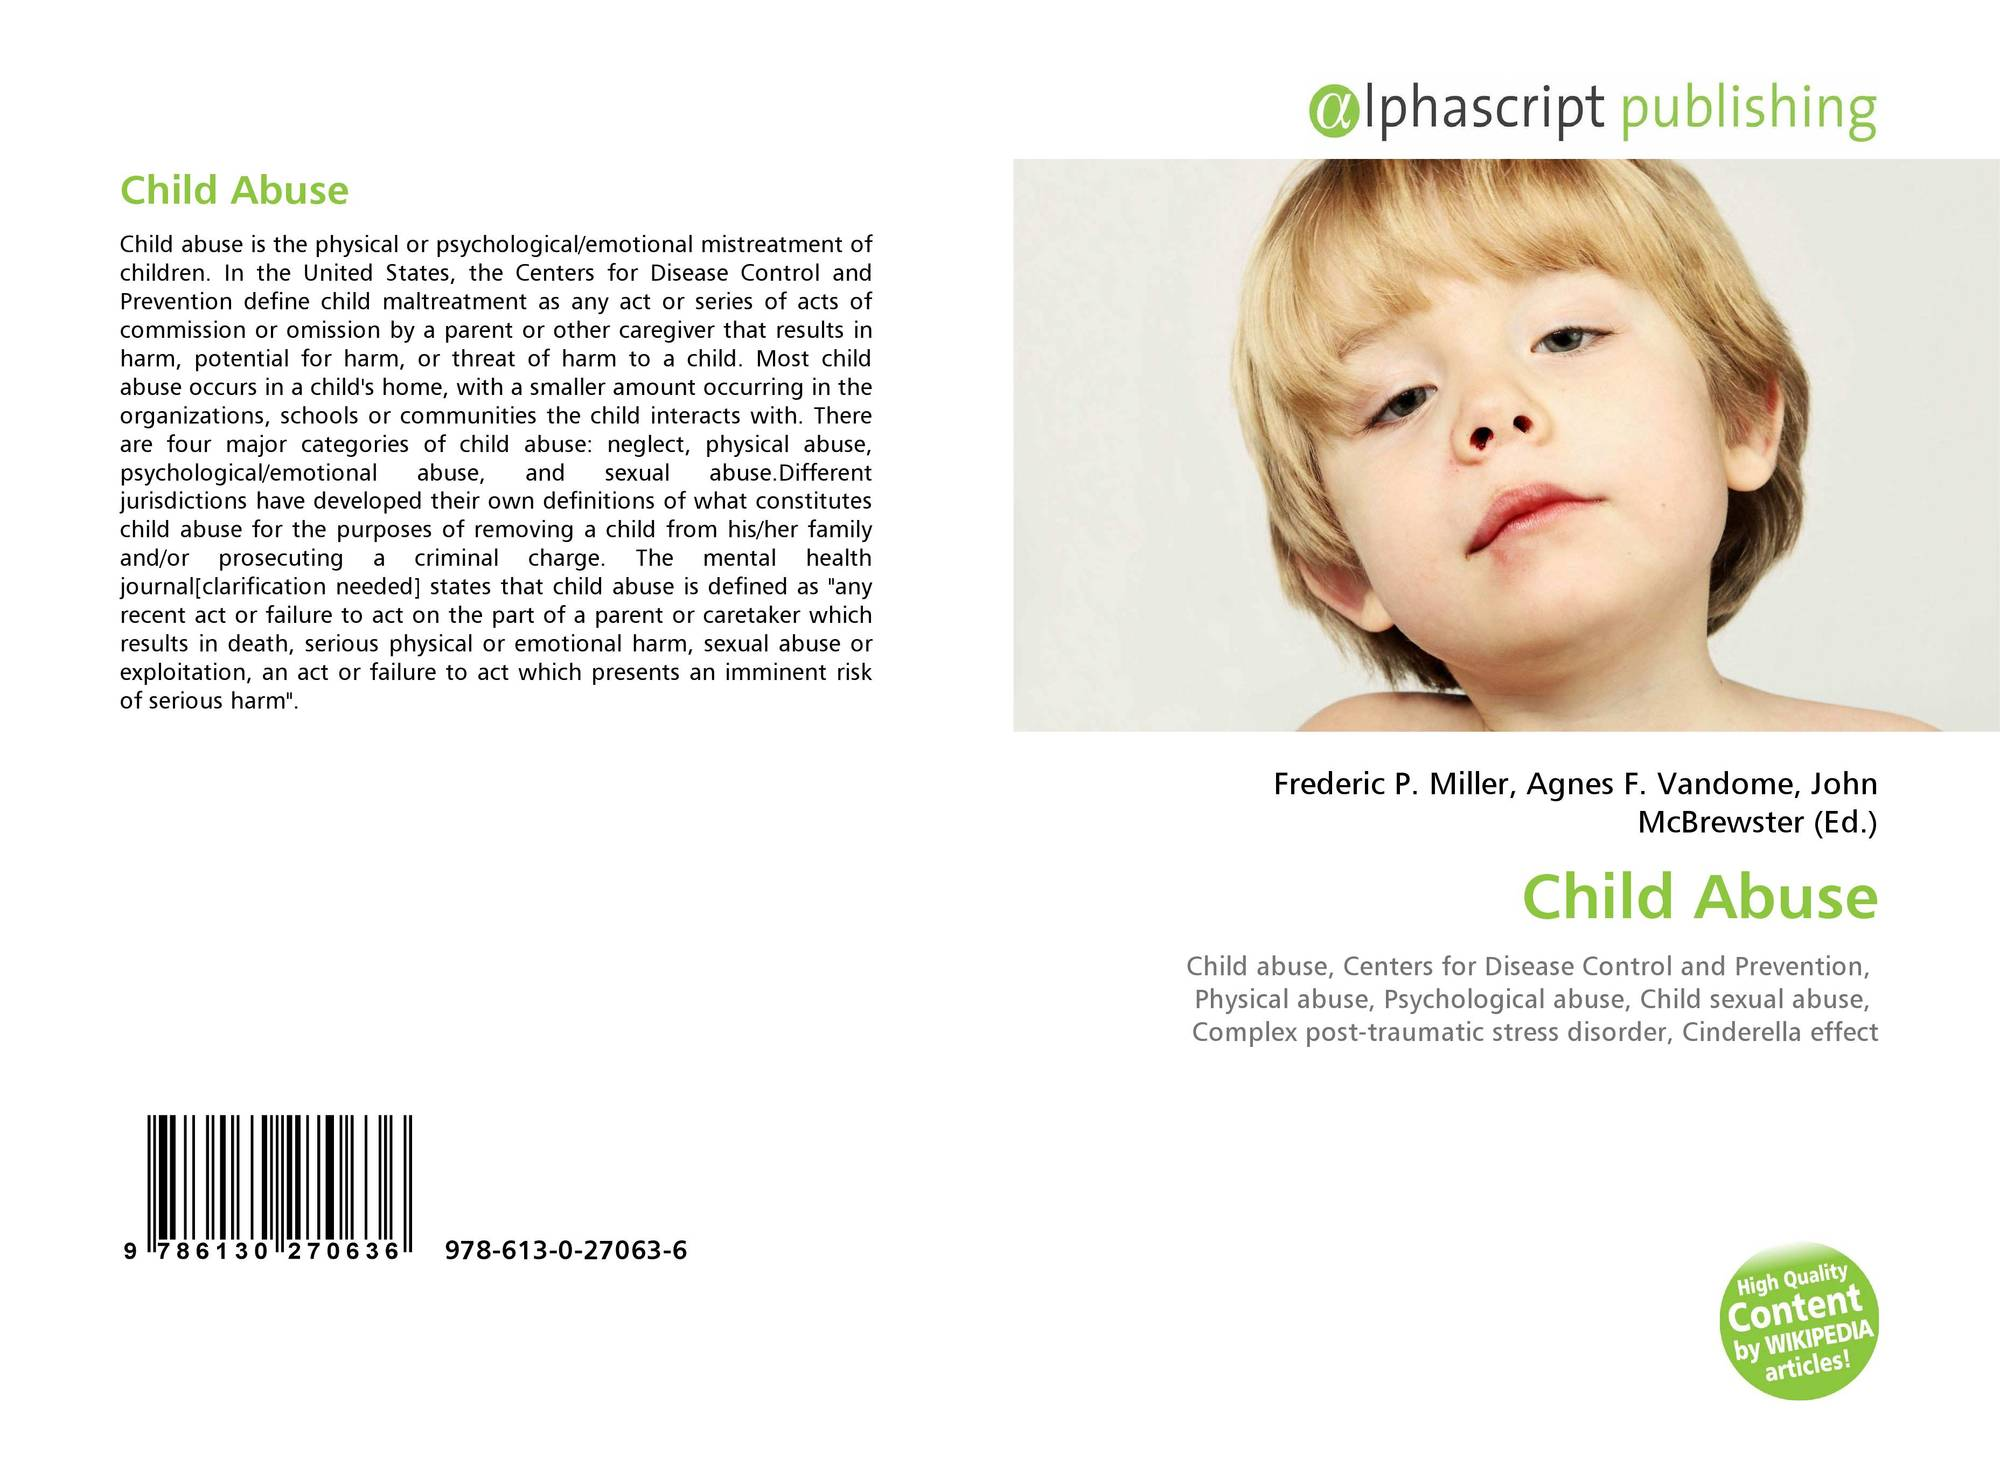 the results of abuse on the development of childs psychology Child maltreatment during infancy and early childhood has been shown to negatively affect child development, including brain and cognitive development, attachment, and academic achievement child abuse and neglect can have enduring physical, intellectual, and psychological repercussions into adolescence and adulthood.